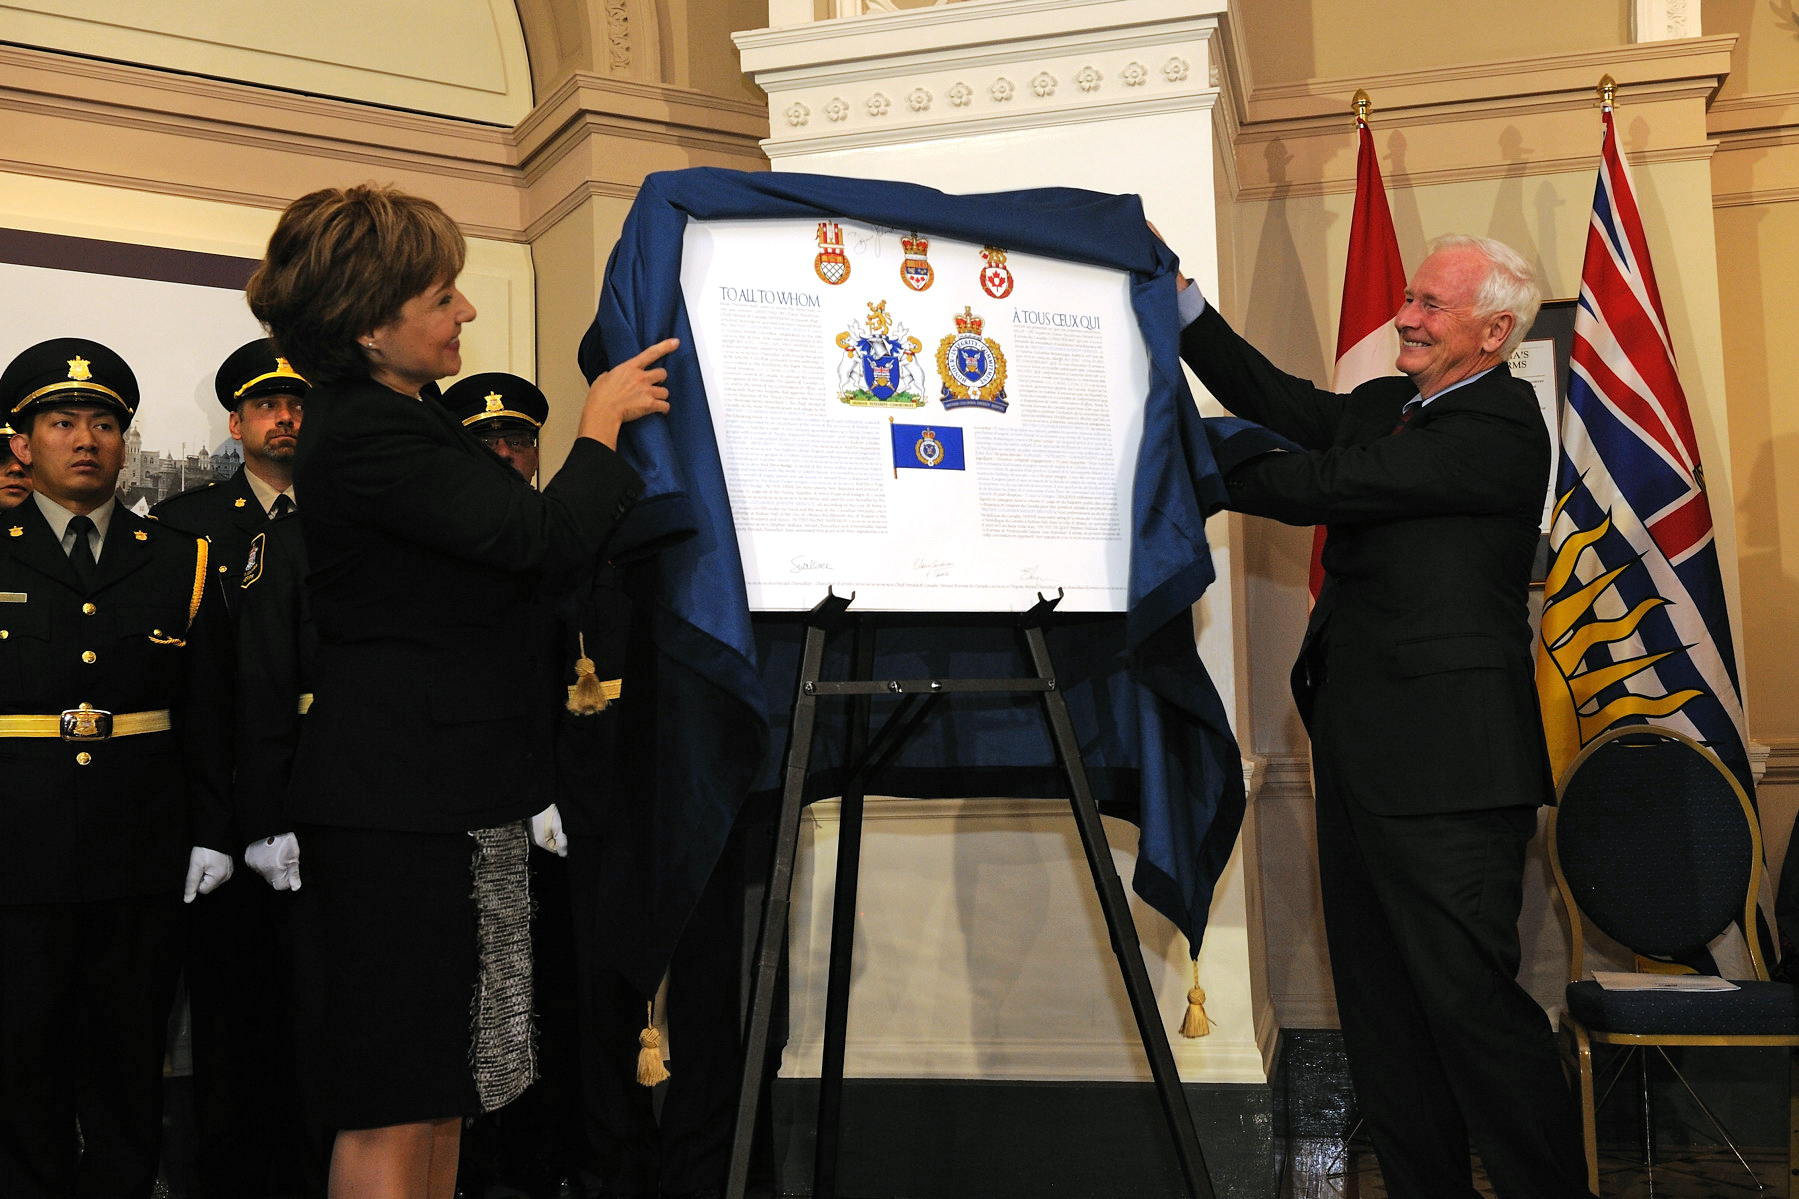 His Excellency with the assistance of the Honourable Christie Clark, Premier of British Columbia, unveiled the coat of arms to the B.C. Sheriff Services.